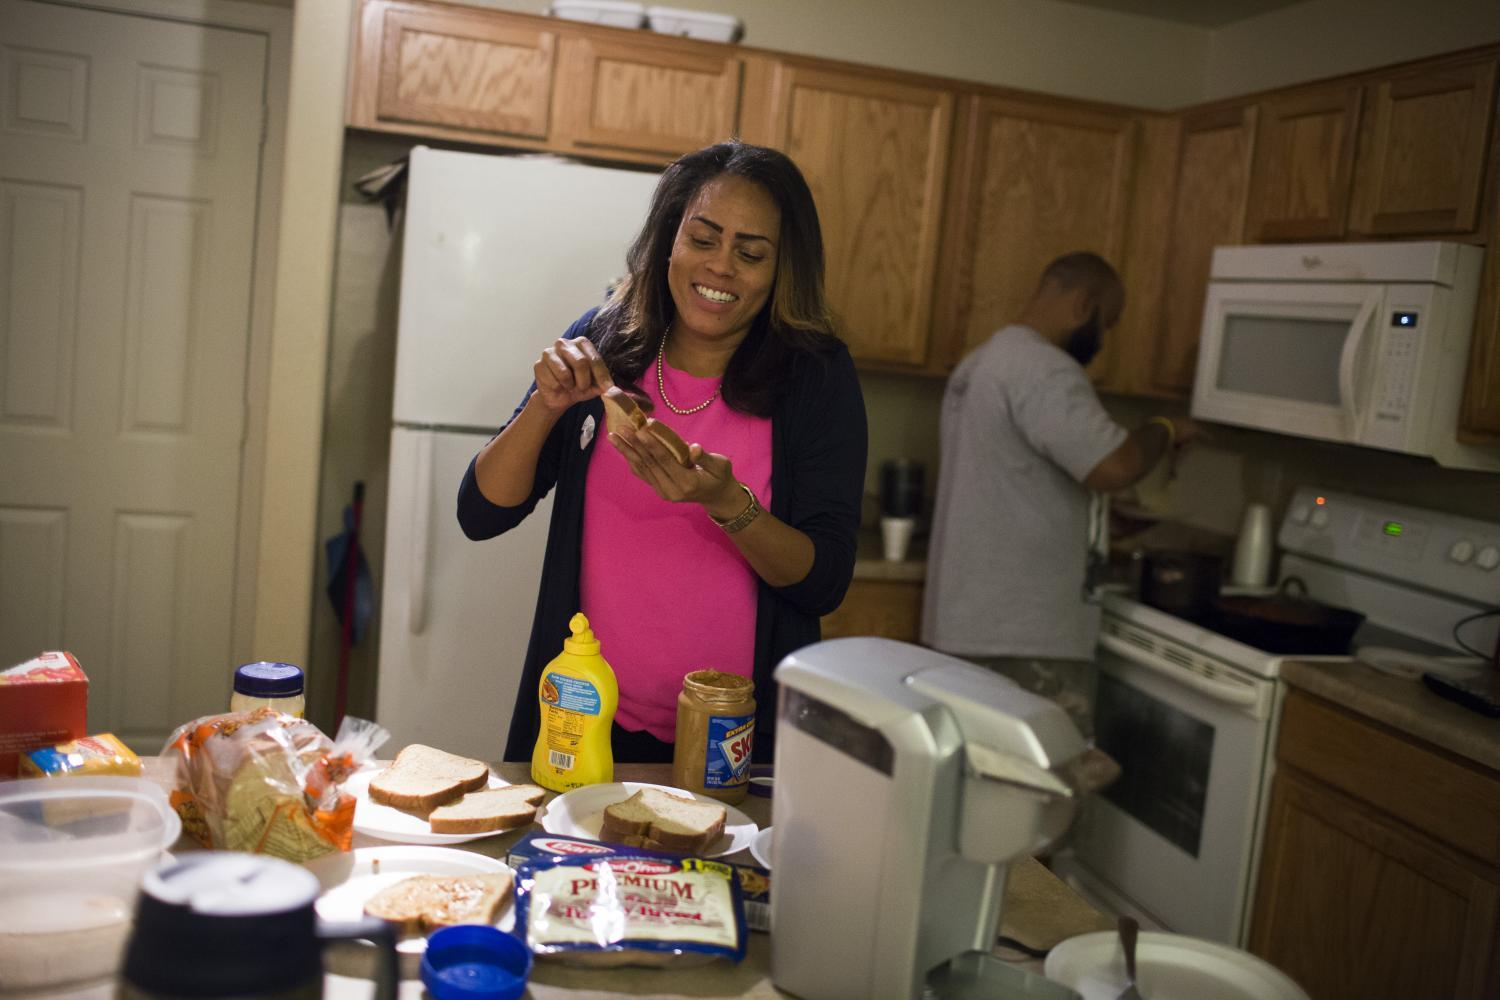 Tracie Ervin makes school lunches for her kids and Michael Ervin prepares dinner.